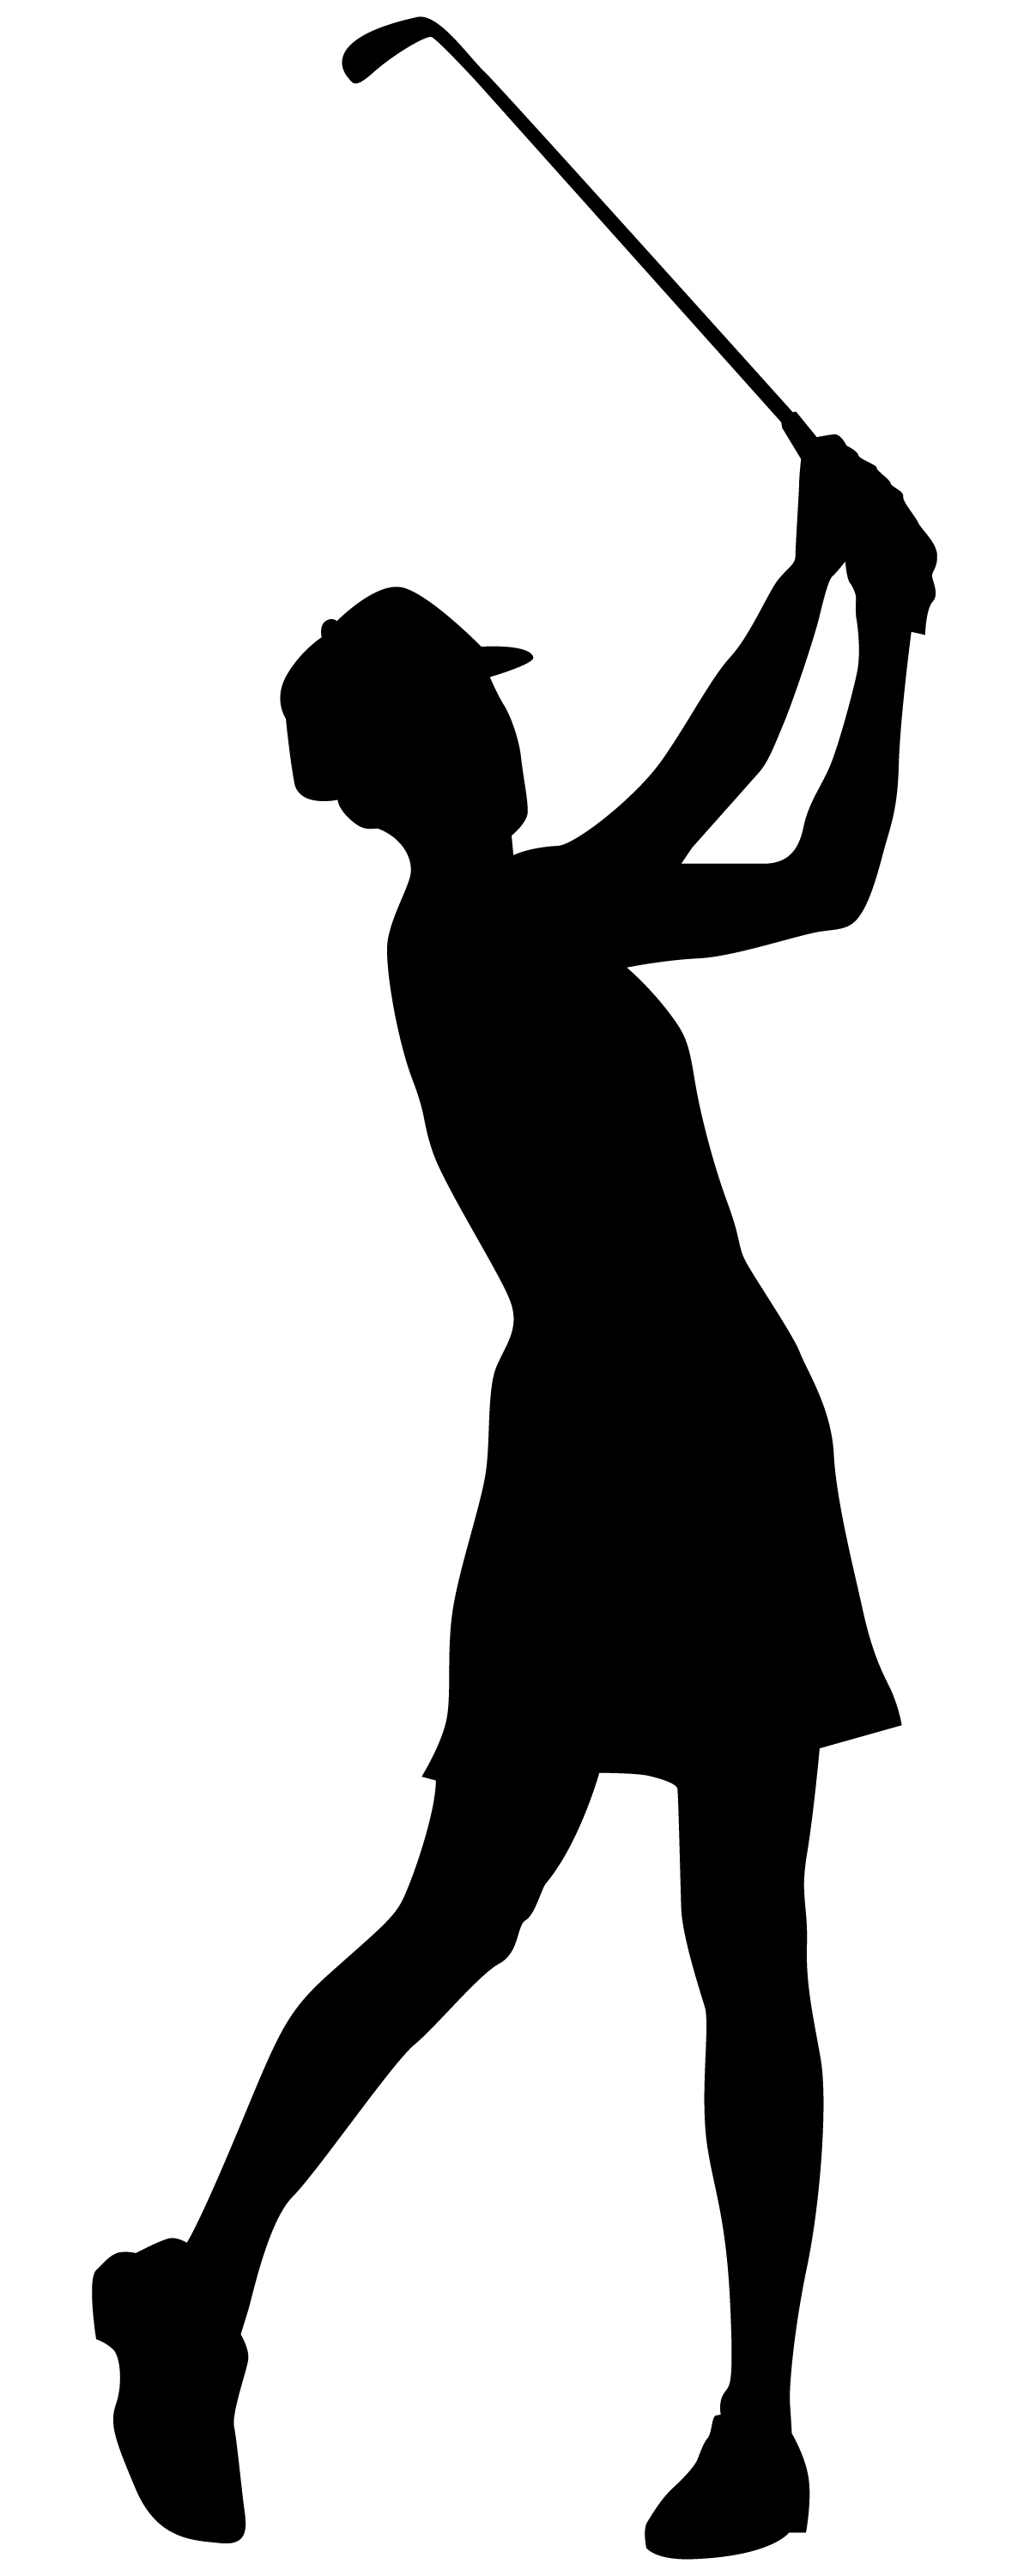 Png Lady Golfer - Female Golfer Cliparts #2536369, Transparent background PNG HD thumbnail